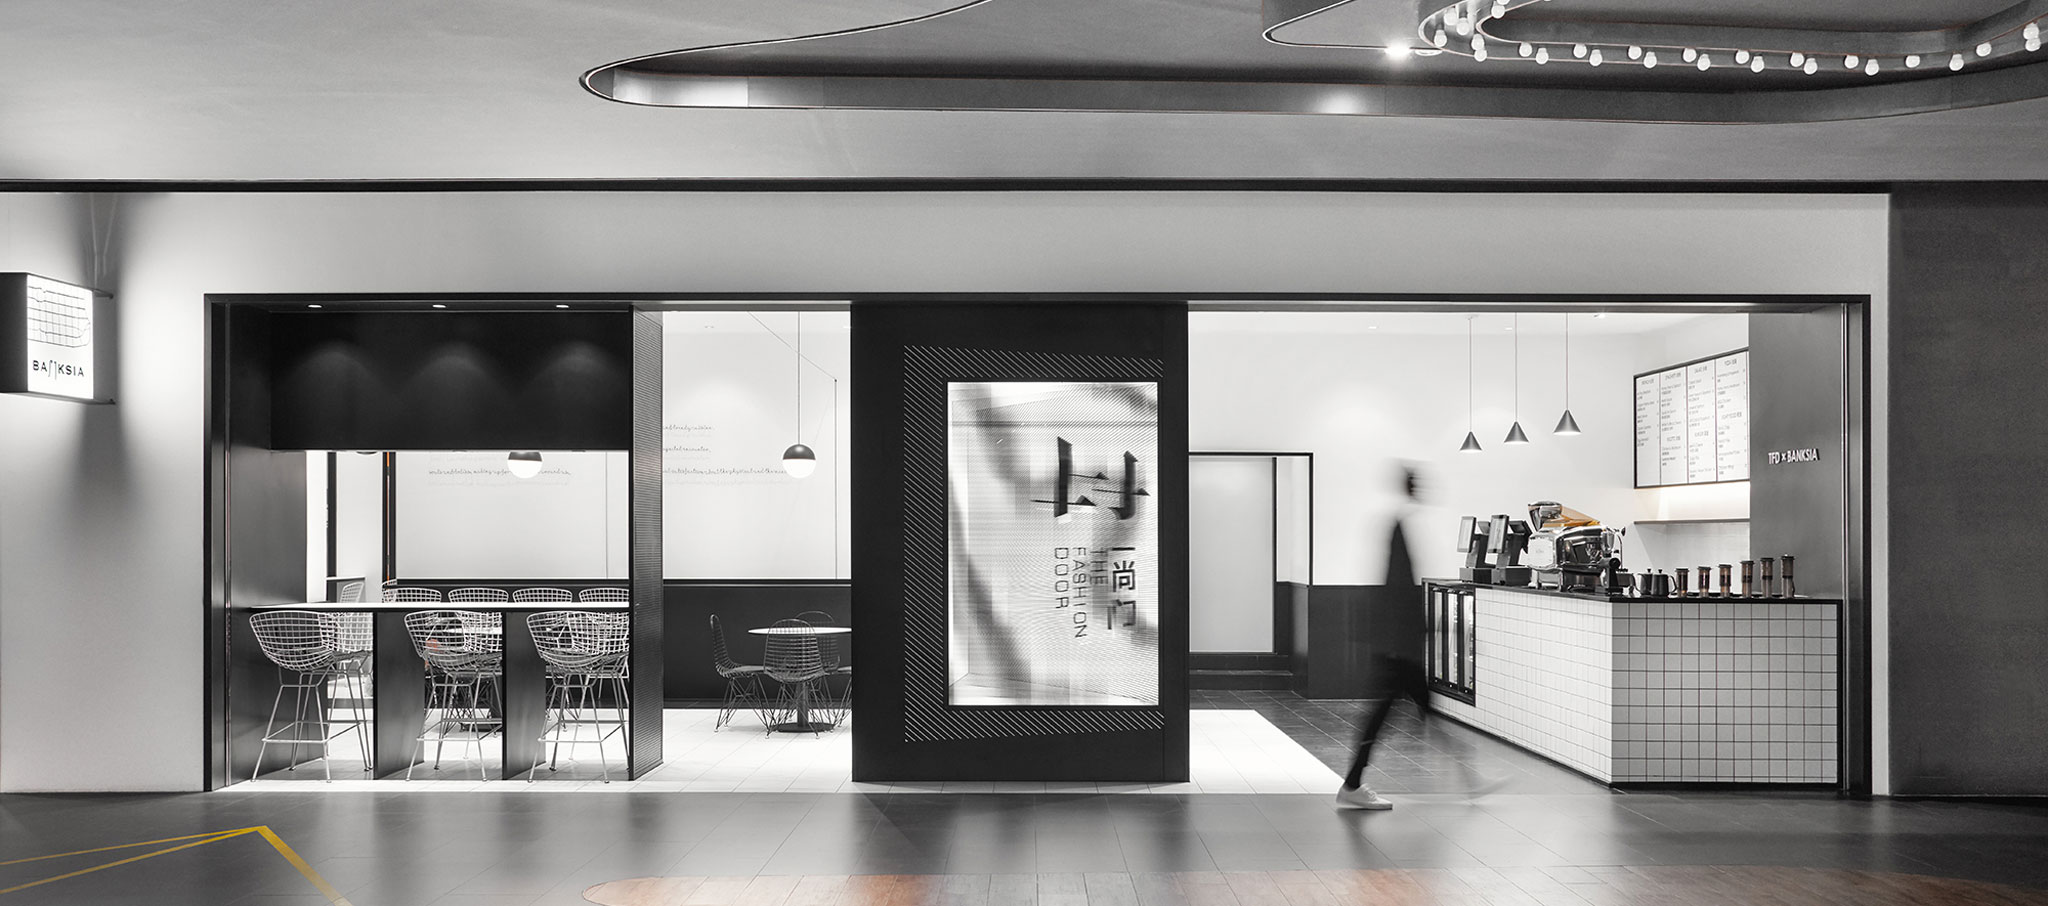 Entrance. TFD Restaurant by Leaping Creative. Photograph by Zaohui Huang